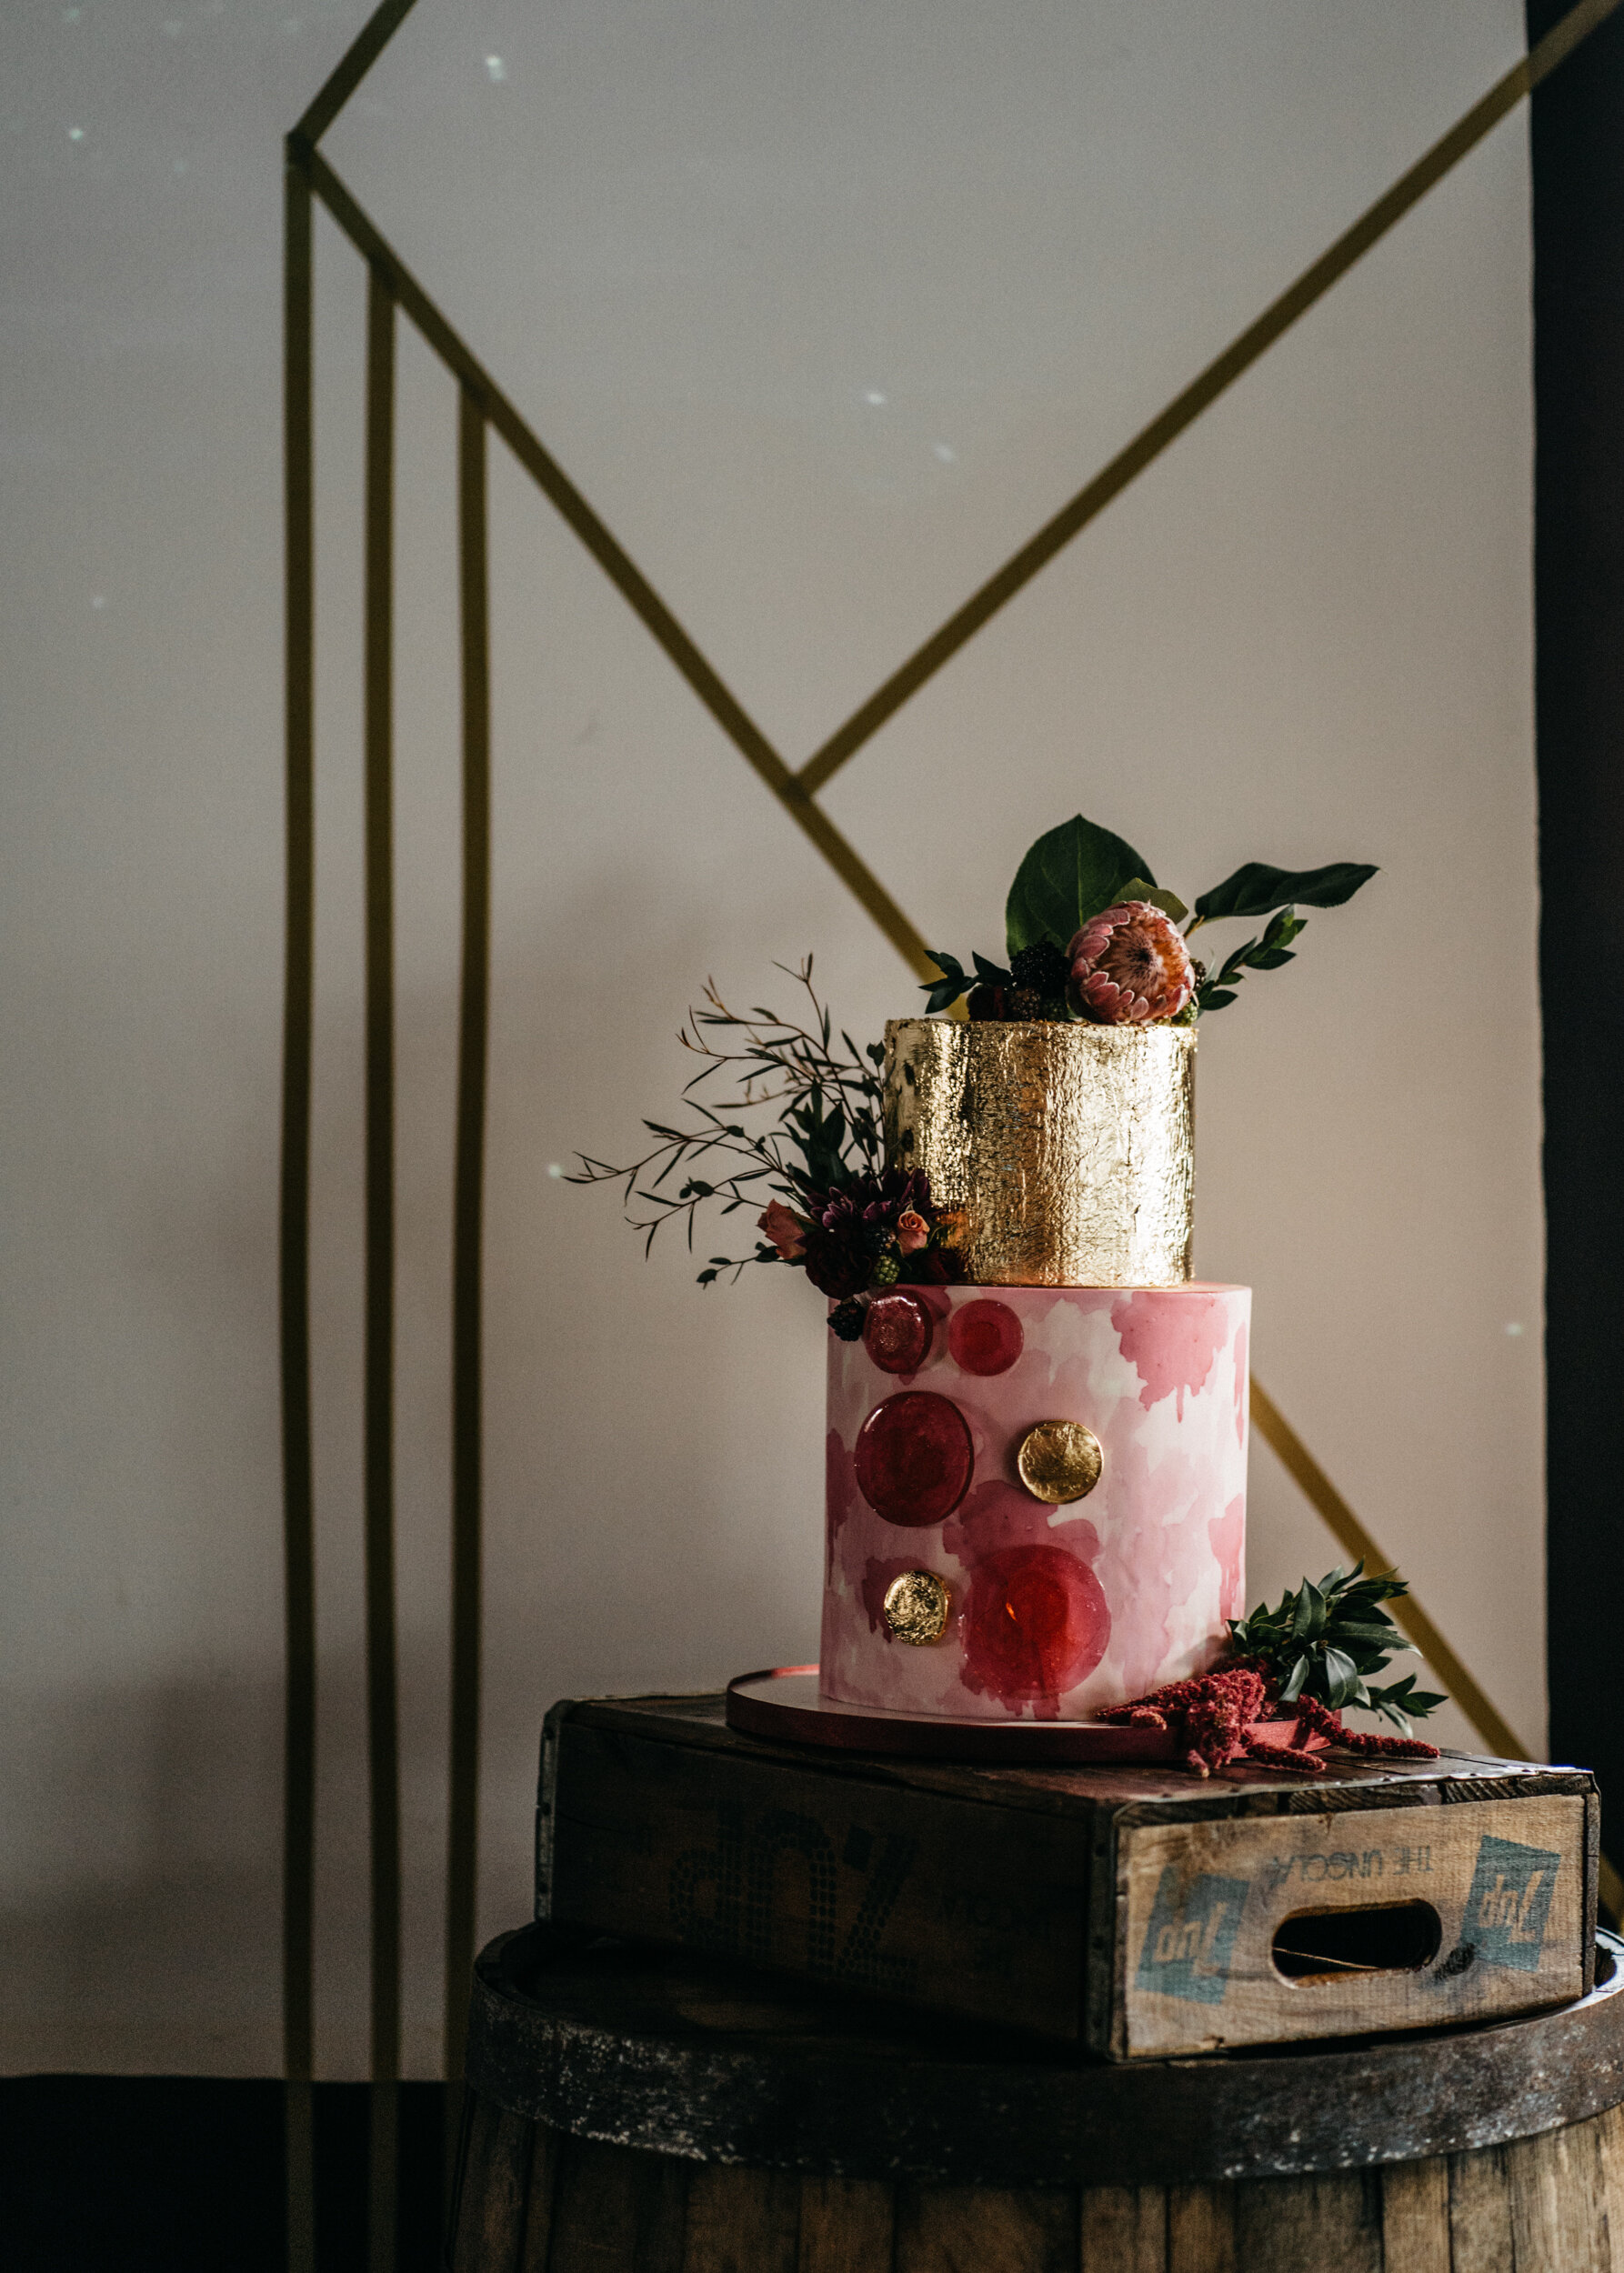 Gold designs along a Missouri Spirits Distillery wall and on cake by Charity Fent Cake Design - Industrial Wedding Inspiration with Destination Wedding Planner Unions With Celia and Destination Photographer Sean Reid Photography.